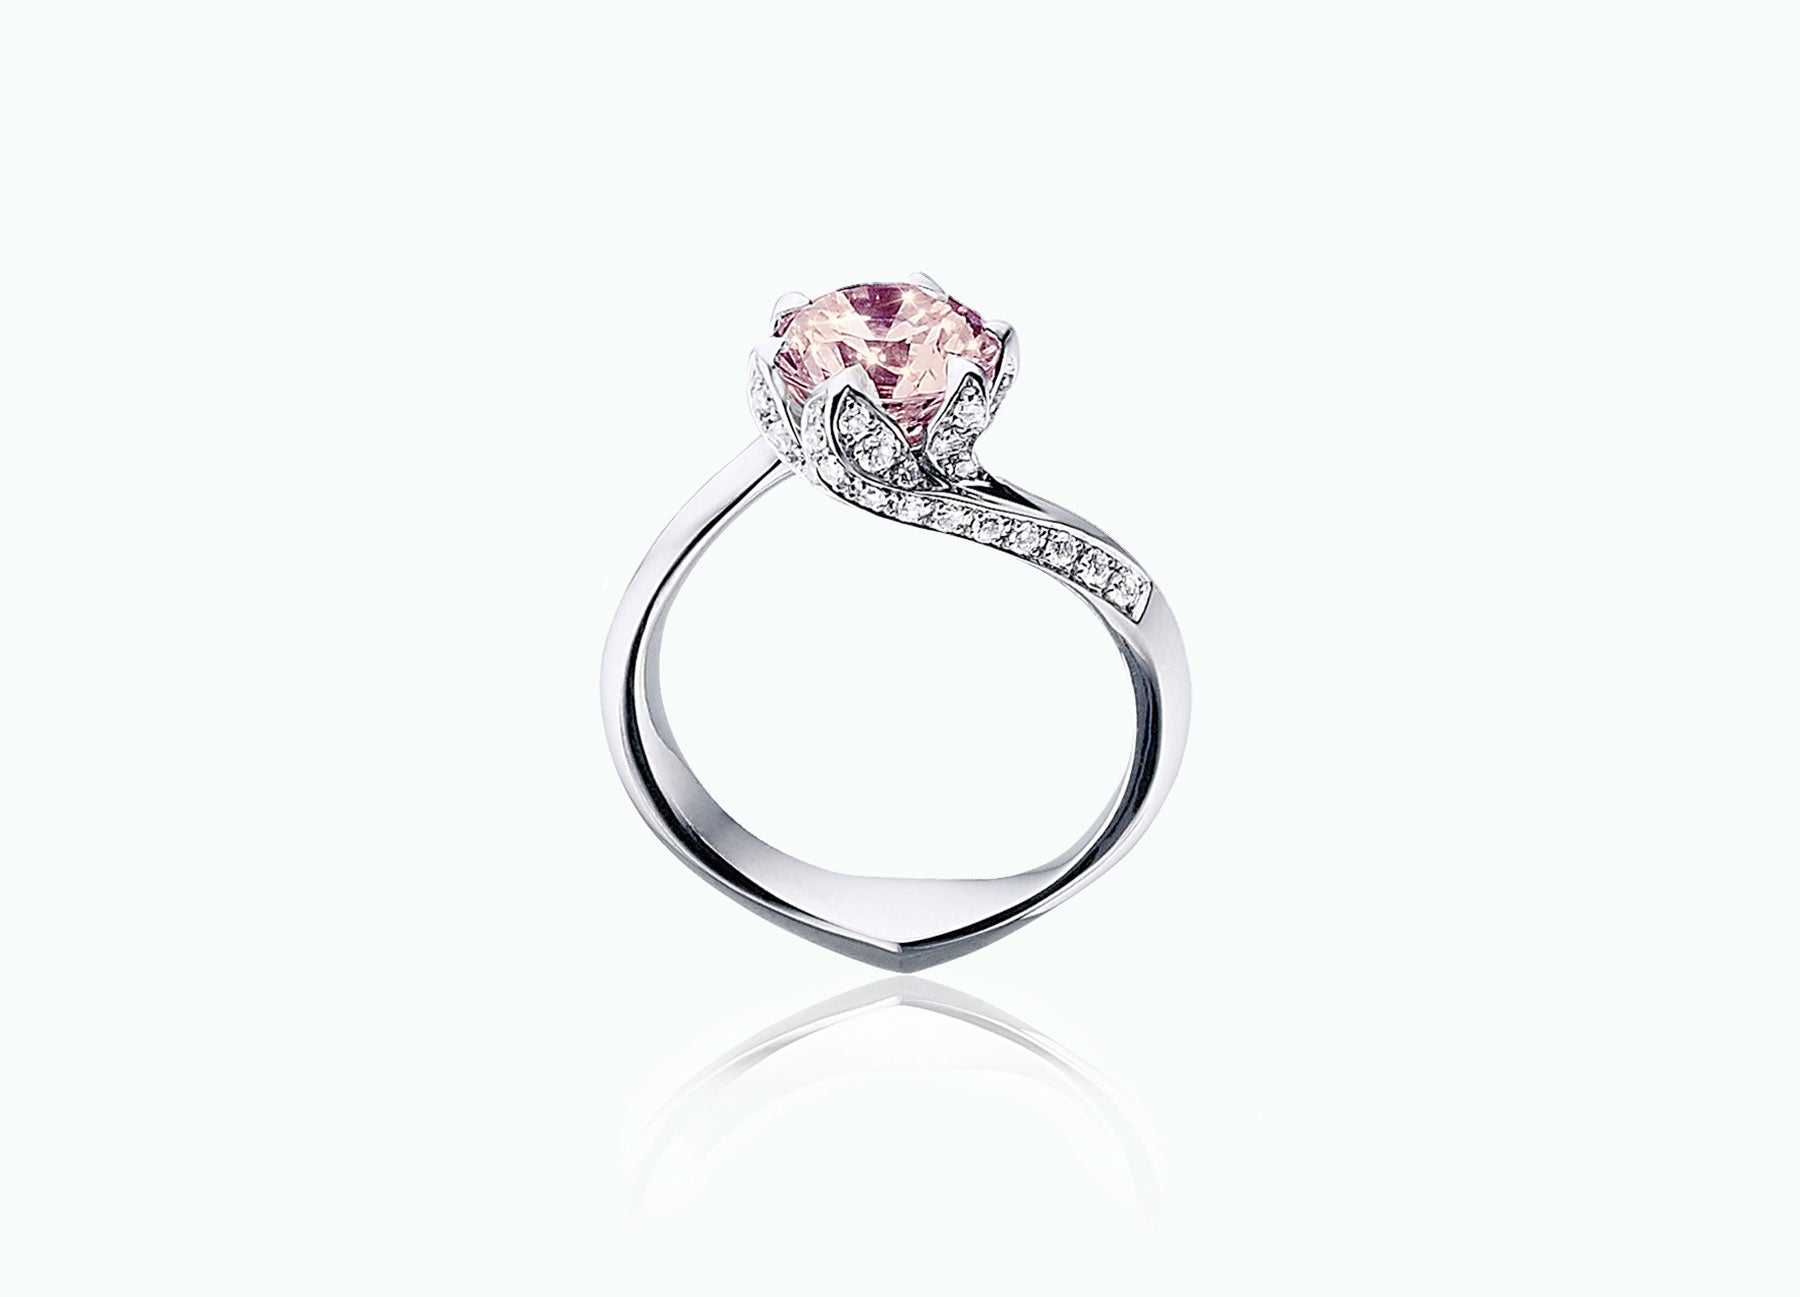 Lily Pad White Gold Unique Engagement Ring with White Diamonds and a Morganite Centre Stone